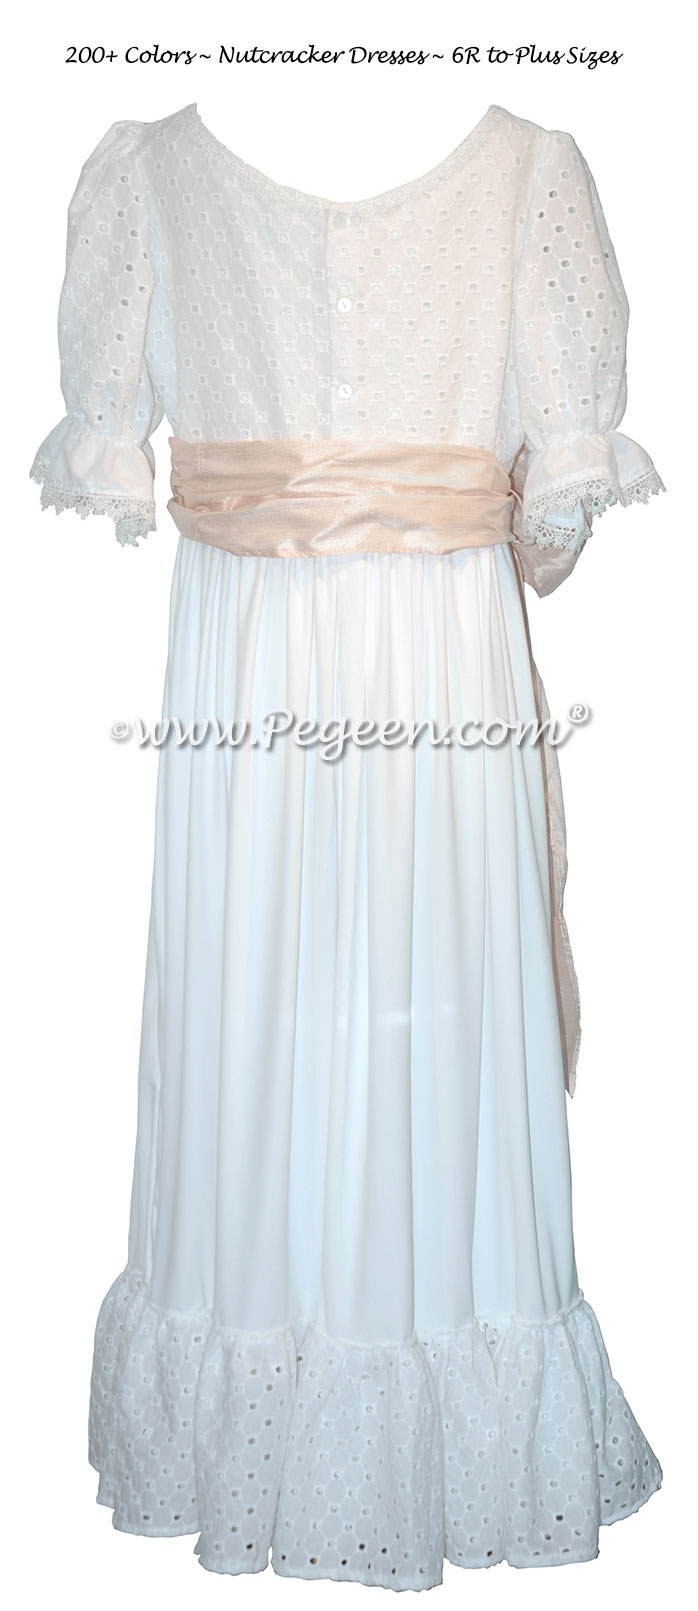 White Cotton Embroidery Nightgown for The Nutcracker